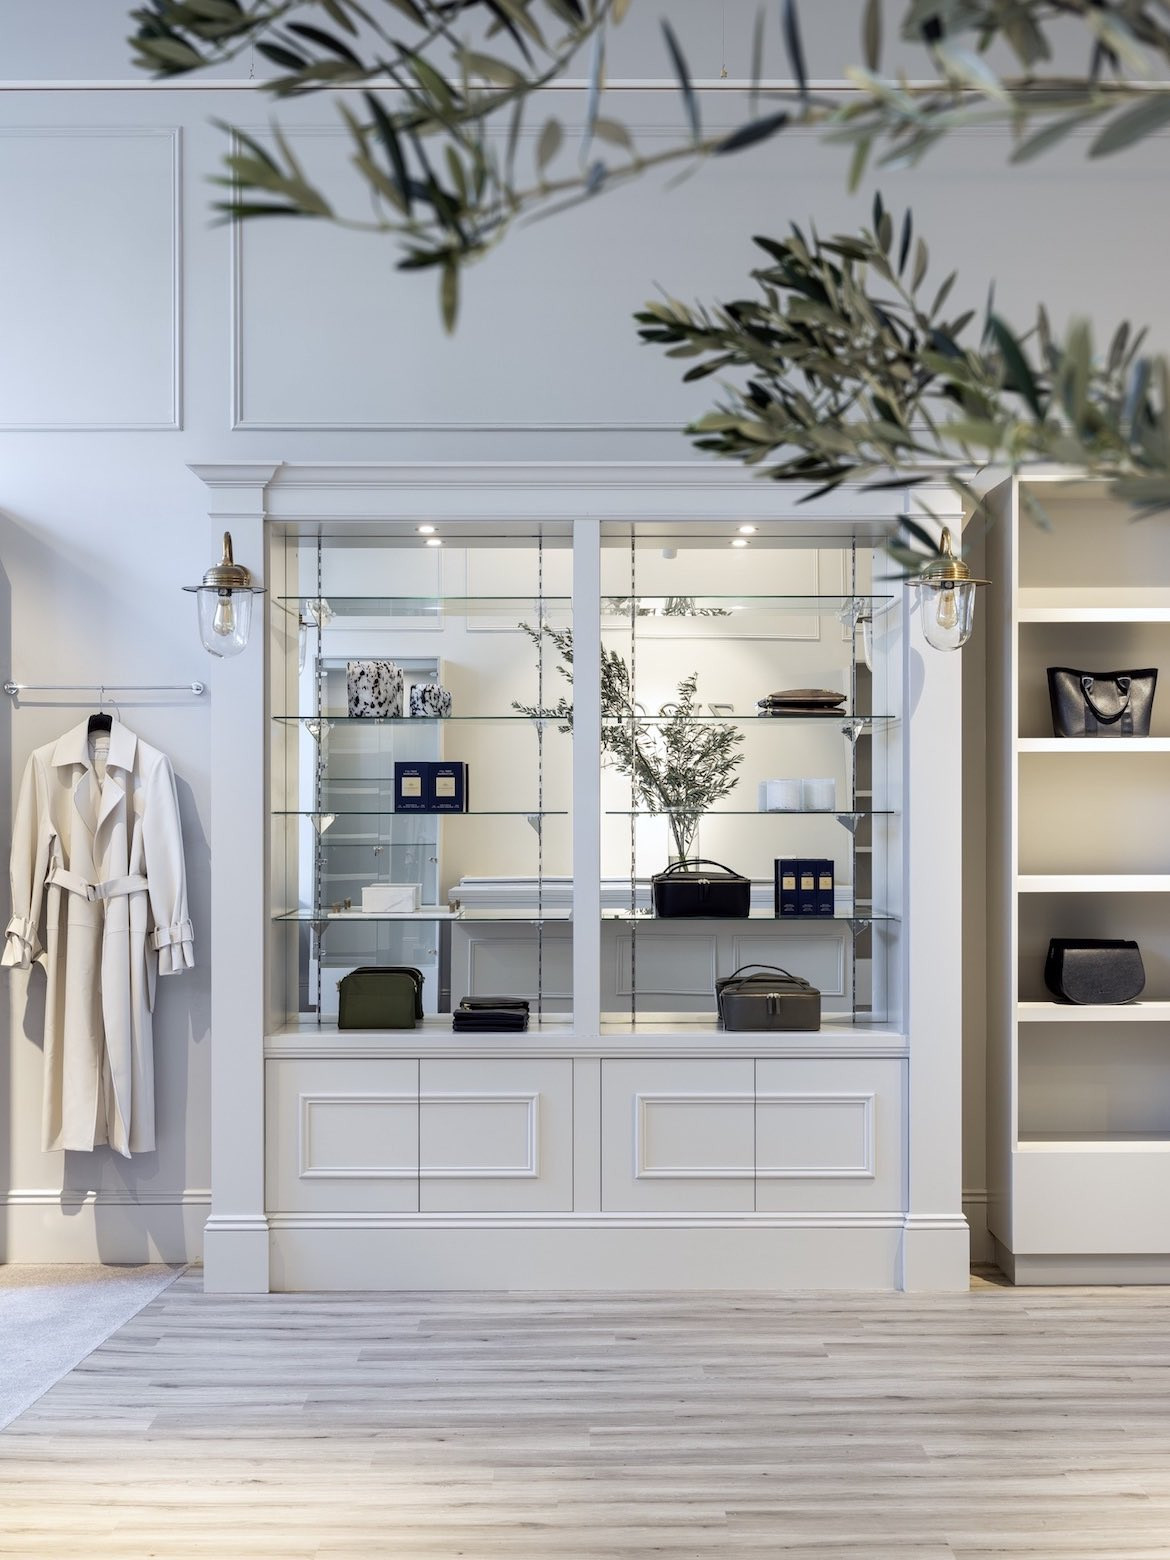 Shelving with a mirrored background display Zjoosh products.